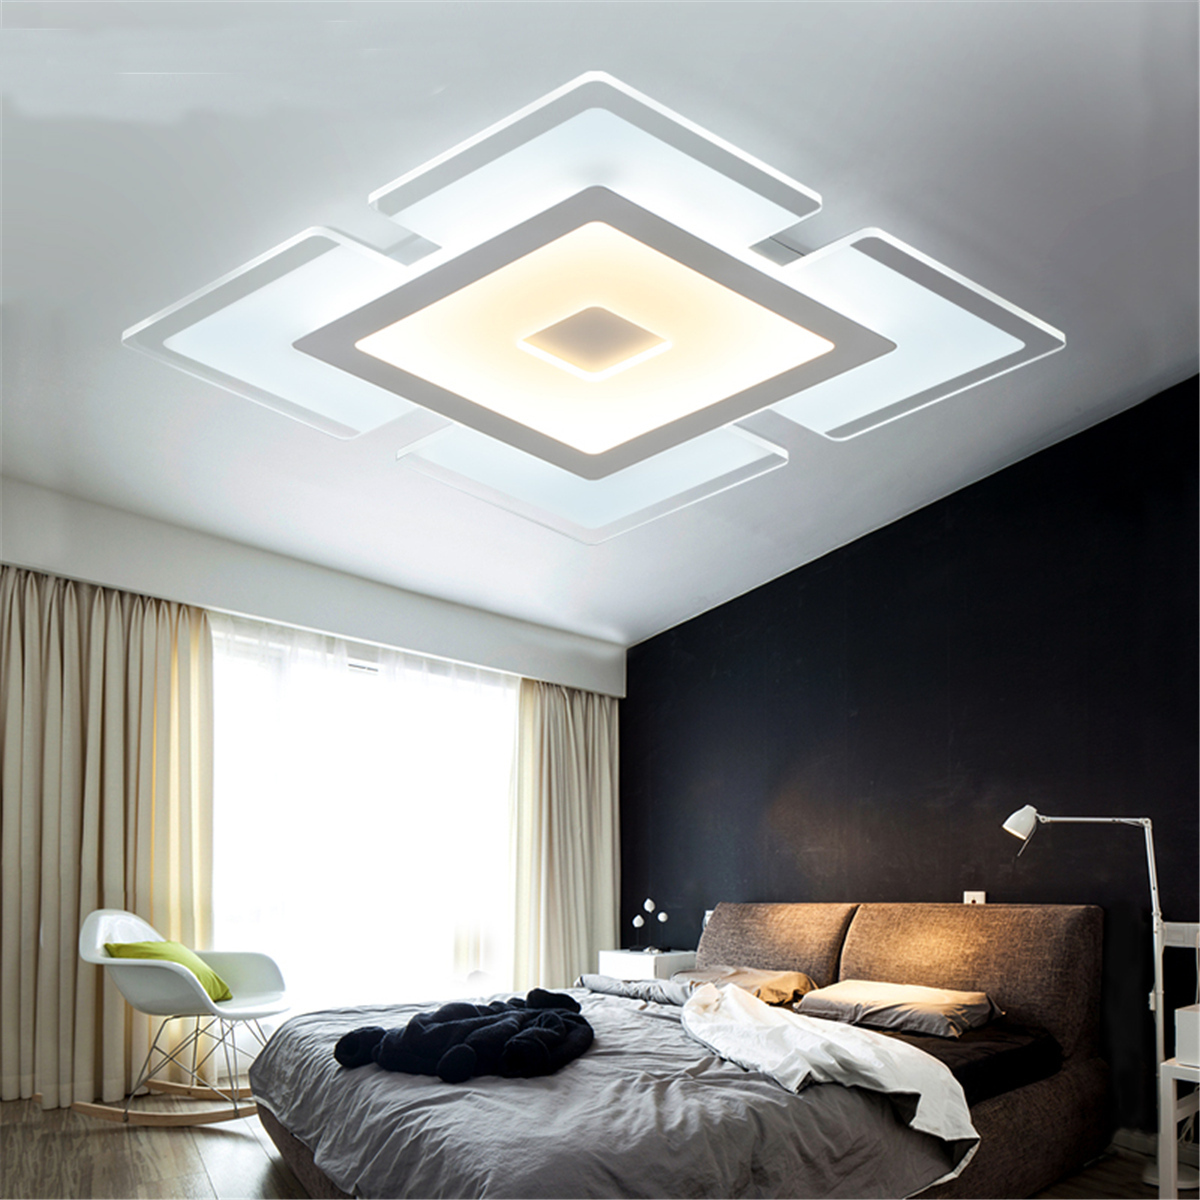 led ceiling light living room seating arrangement modern elegant square acrylic bedroom home lamp walmart com